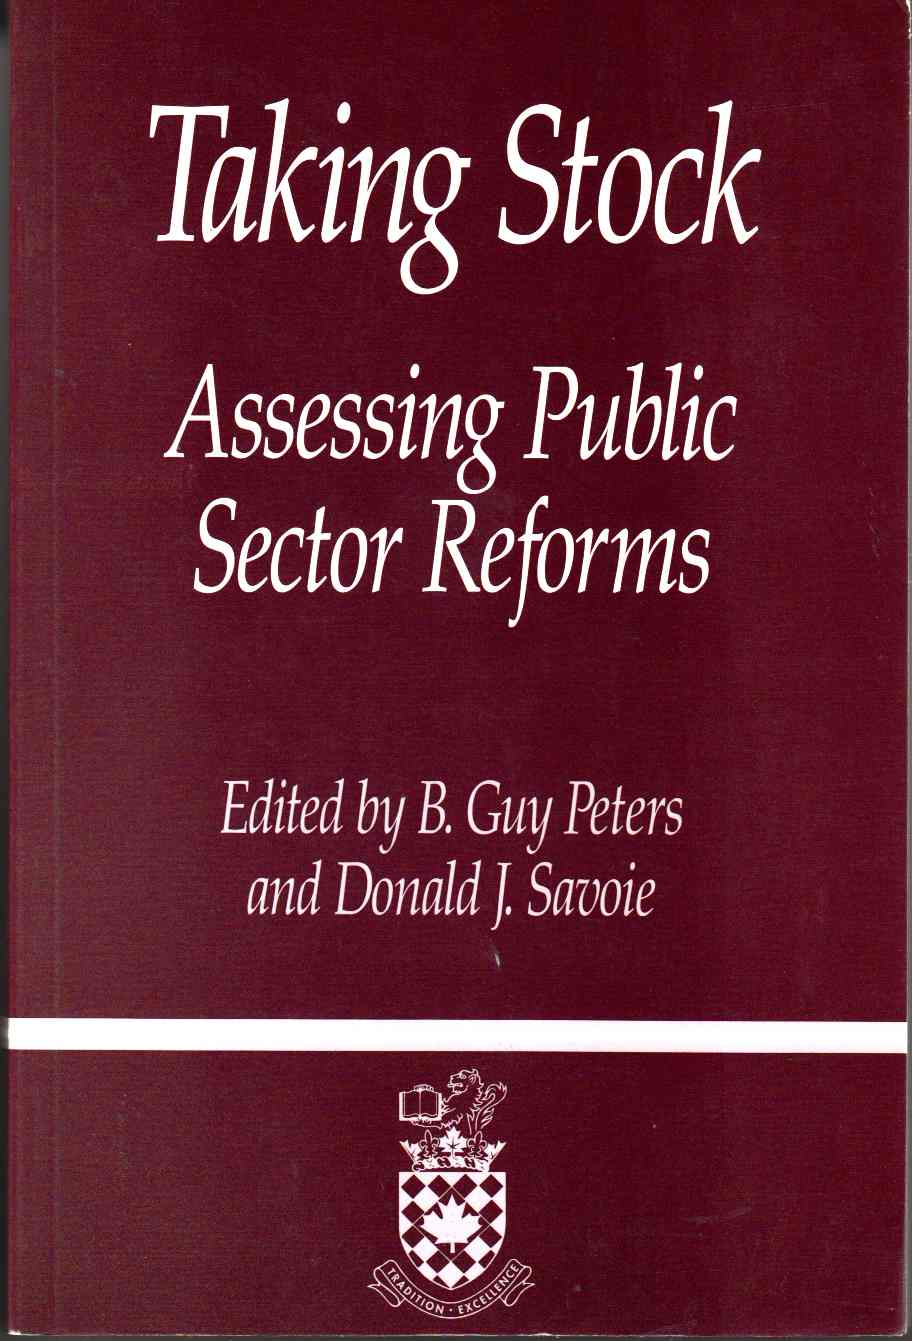 Image for Taking Stock Assessing Public Sector Reforms